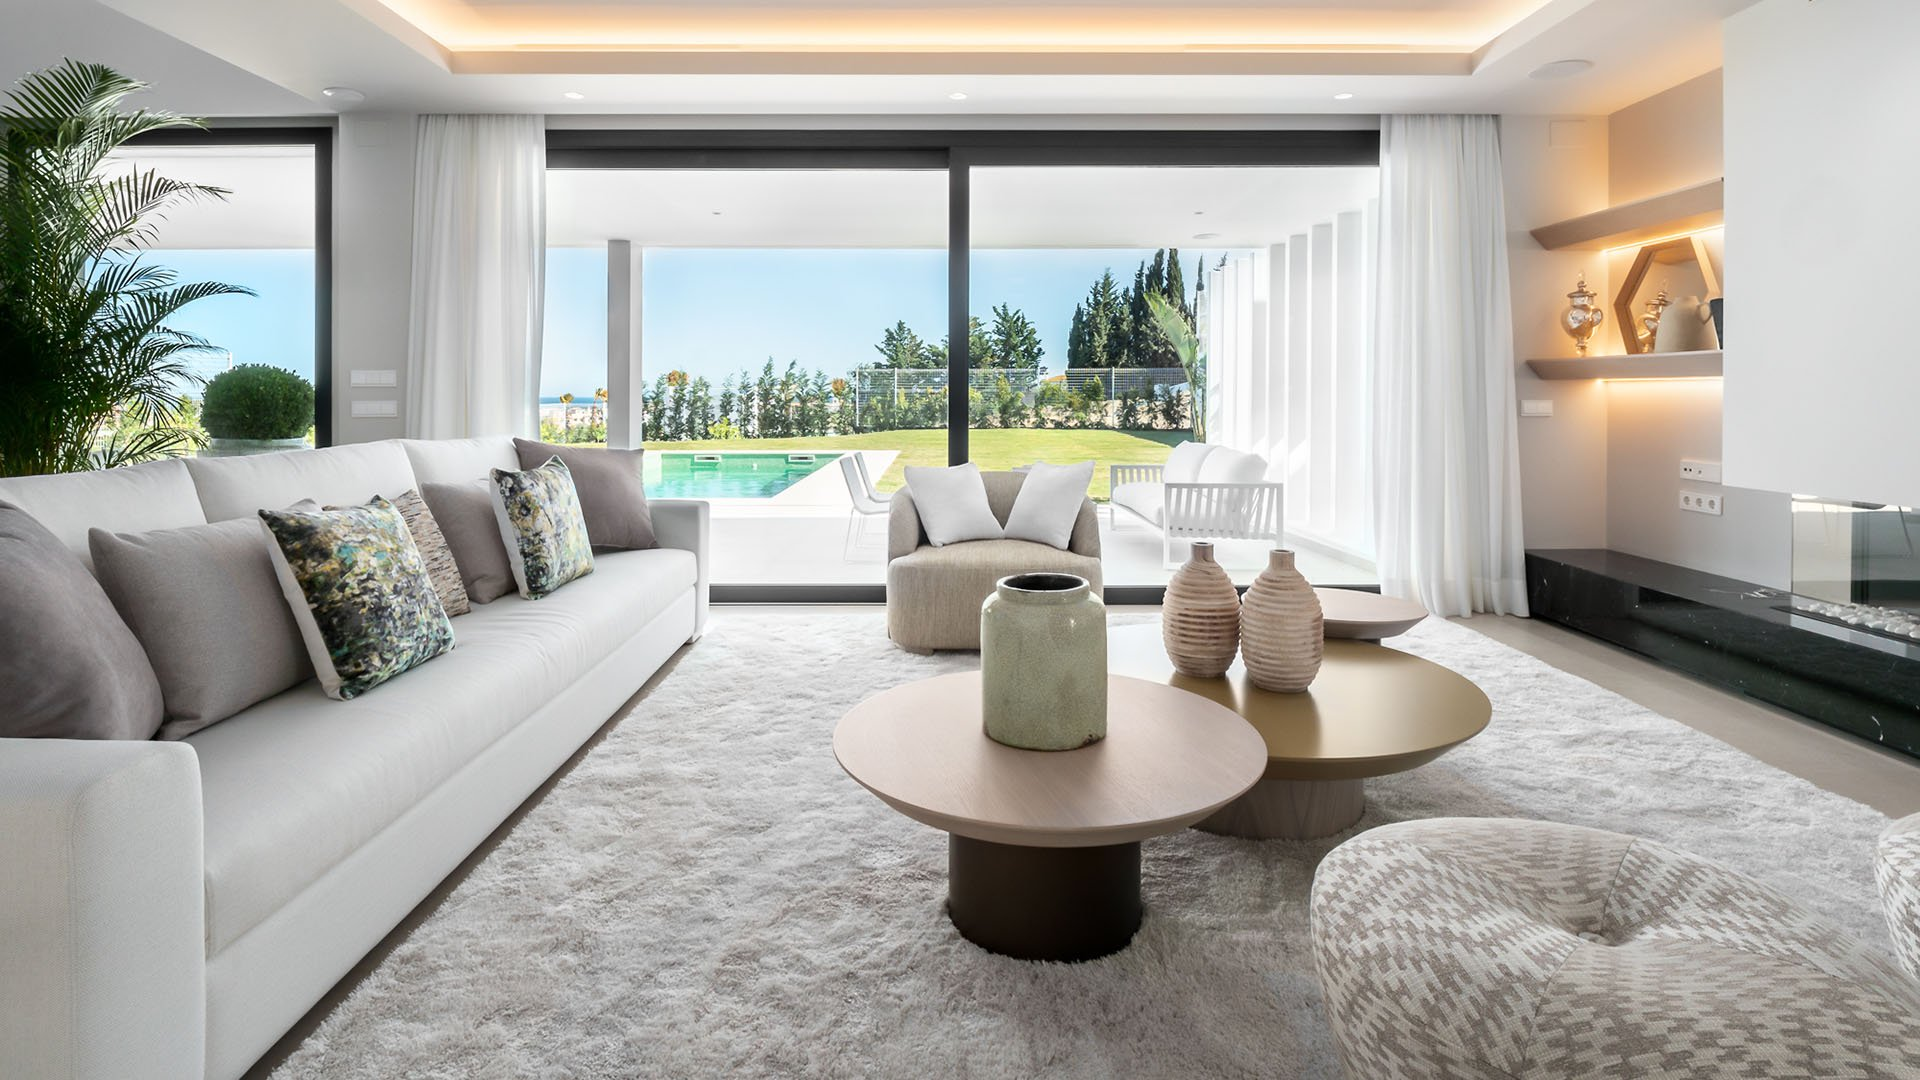 Antik Villas: Unique villa project on the New Golden Mile